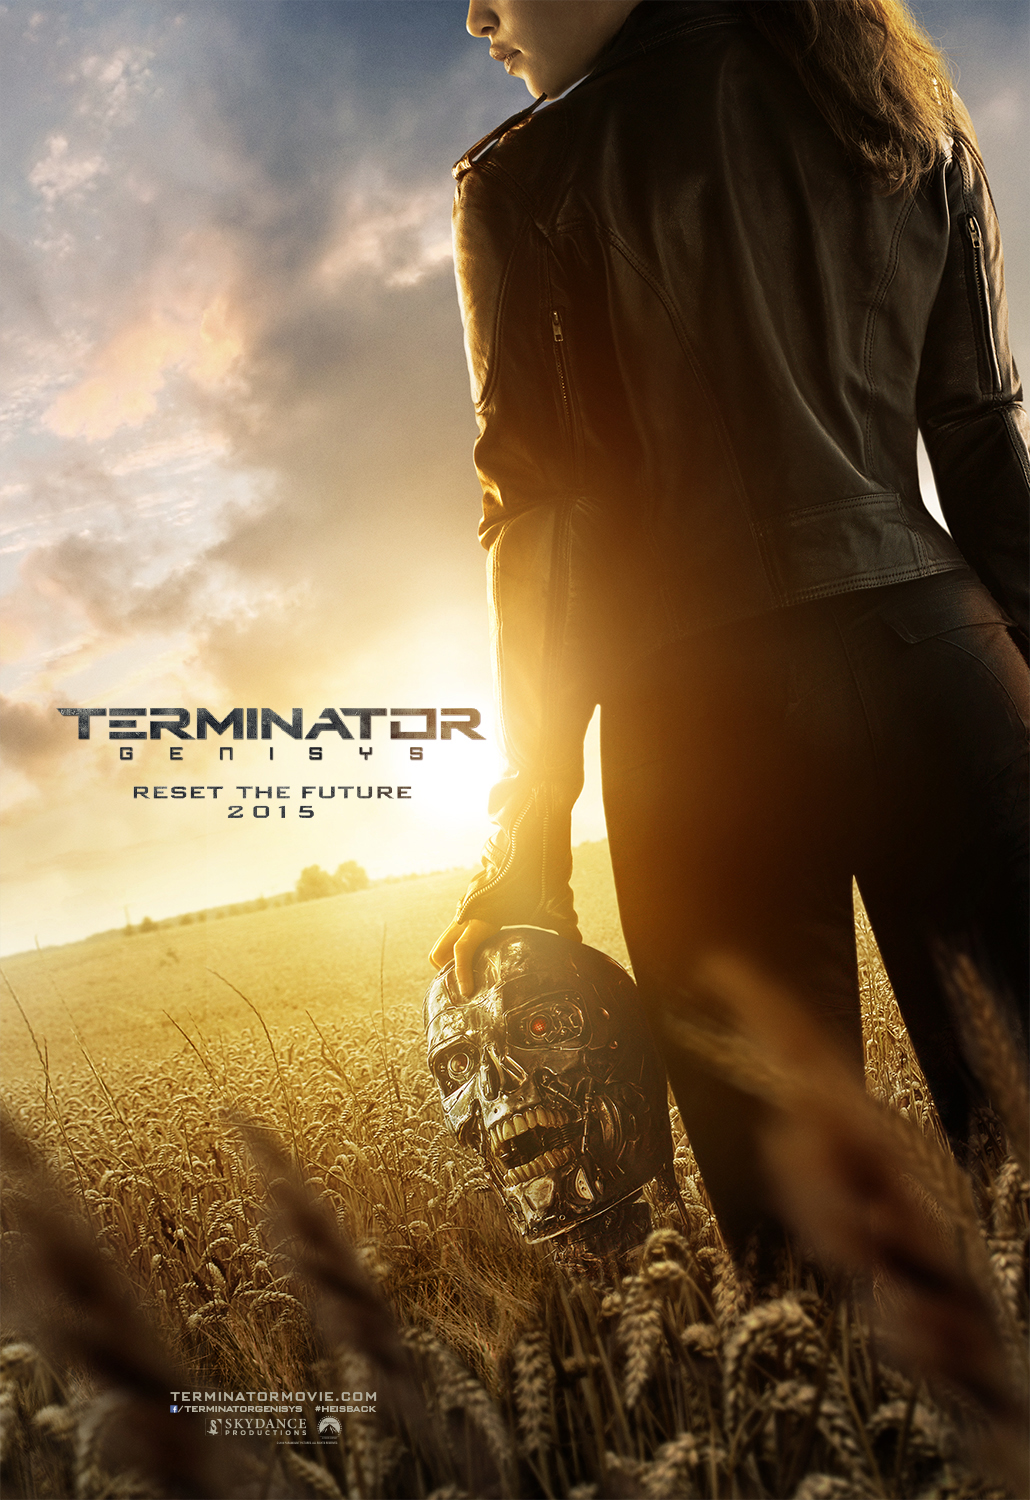 Terminator-5-Genisys-Poster